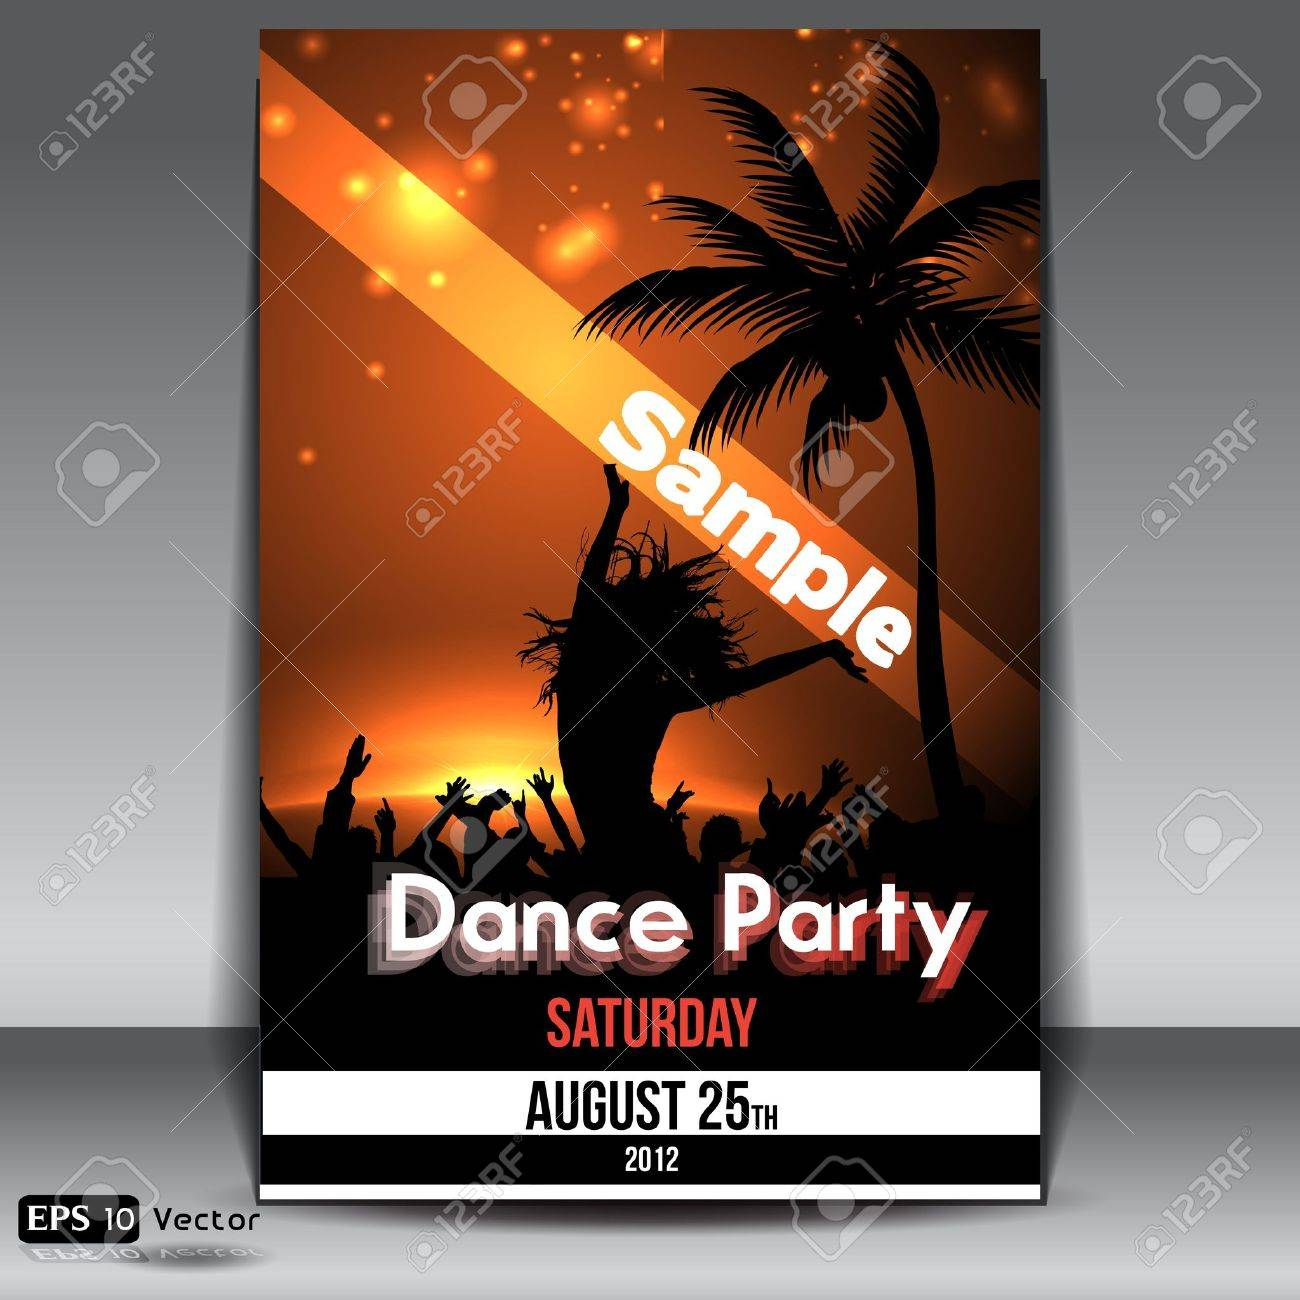 Summer Sunset  Beach Party Flyer with Dancing Young People Stock Vector - 15198723